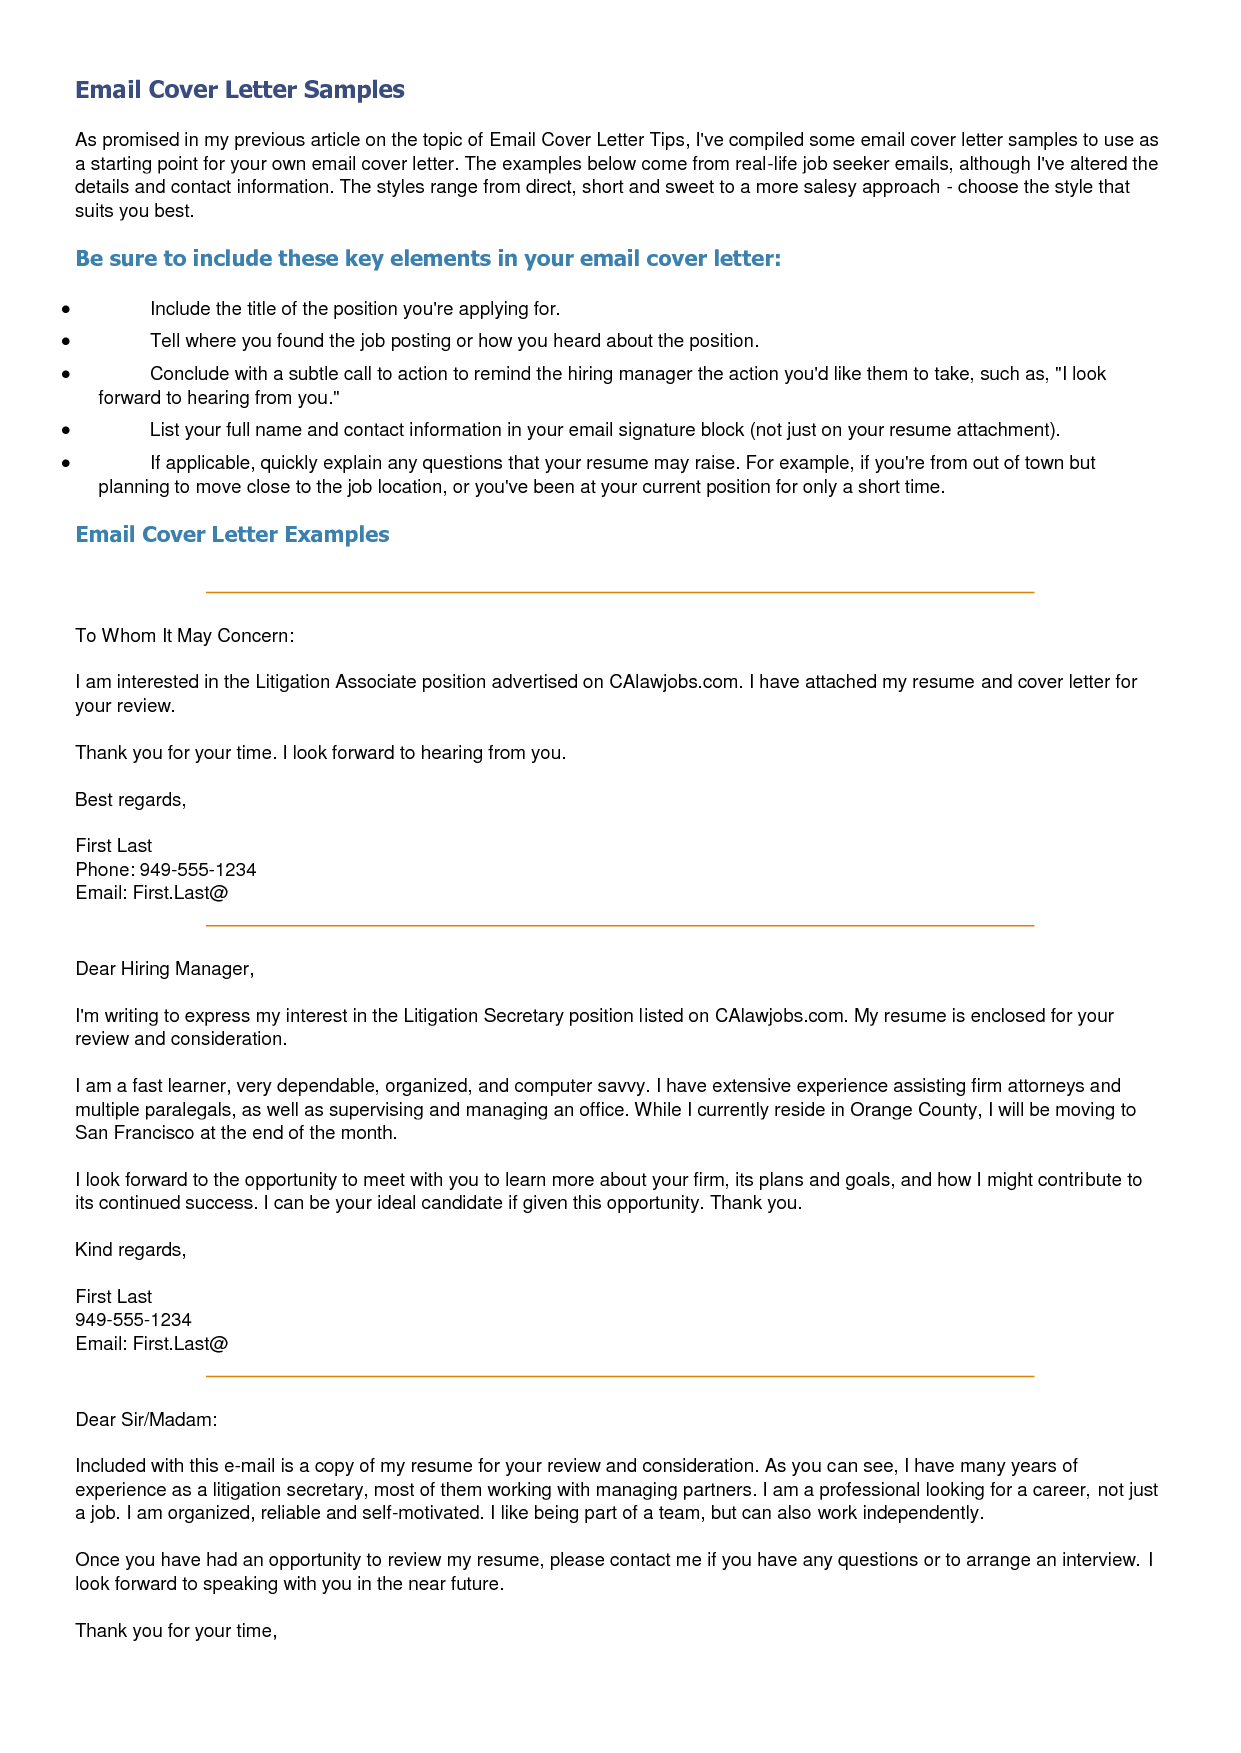 How To Send A Resume And Cover Letter Attachment 12 Tips For Better Email Cover Letters